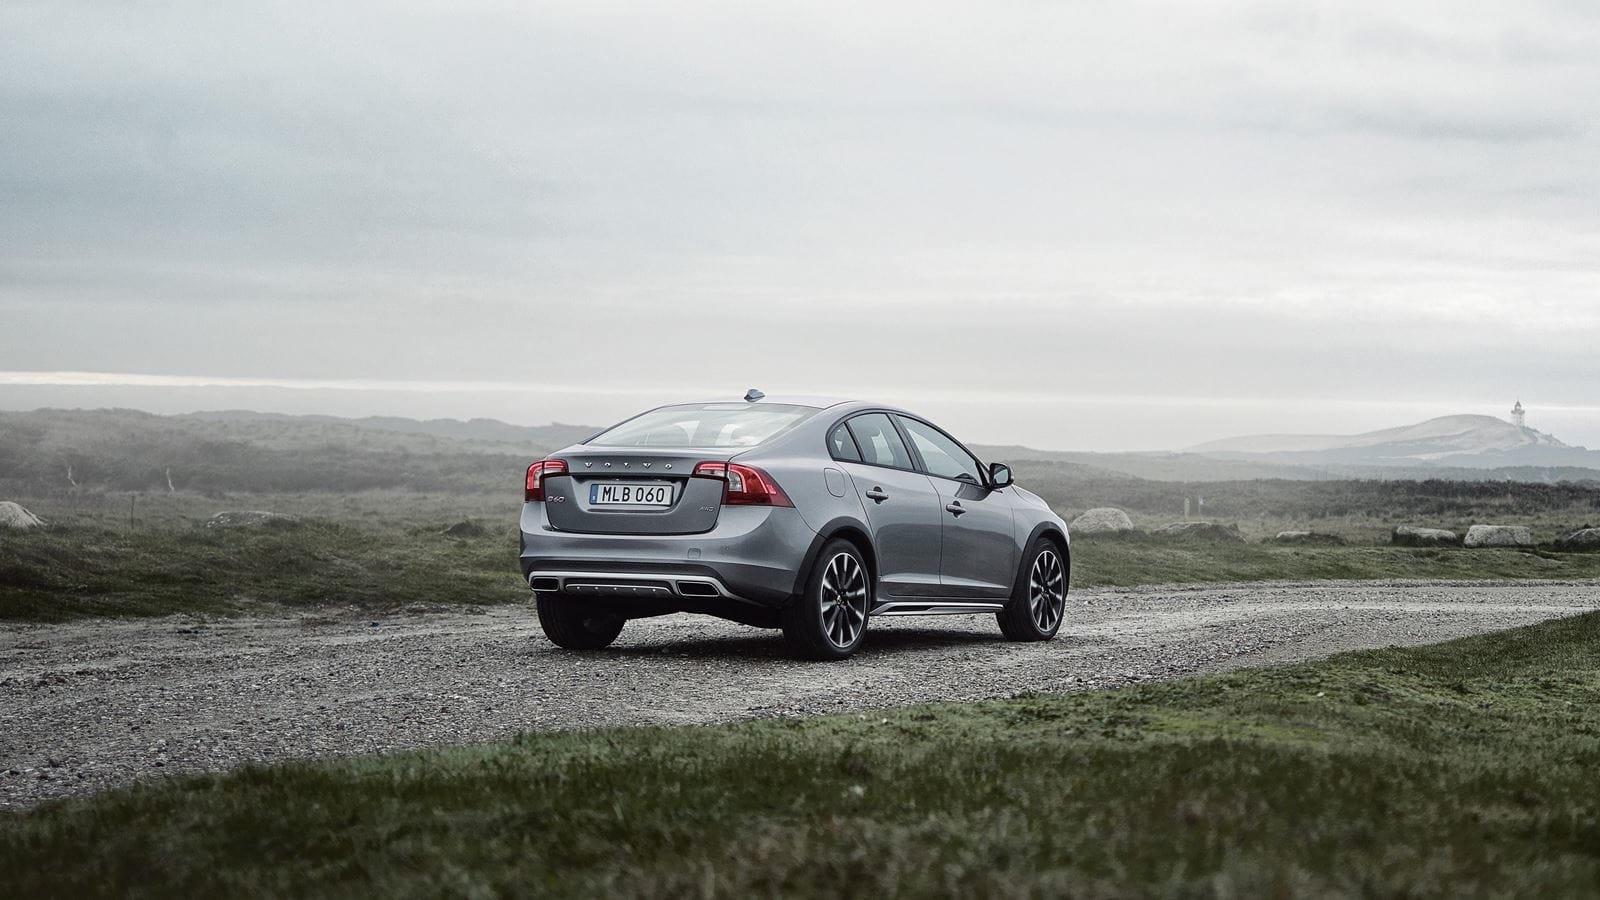 volvo s60 crosscountry exterior right back patrik johall